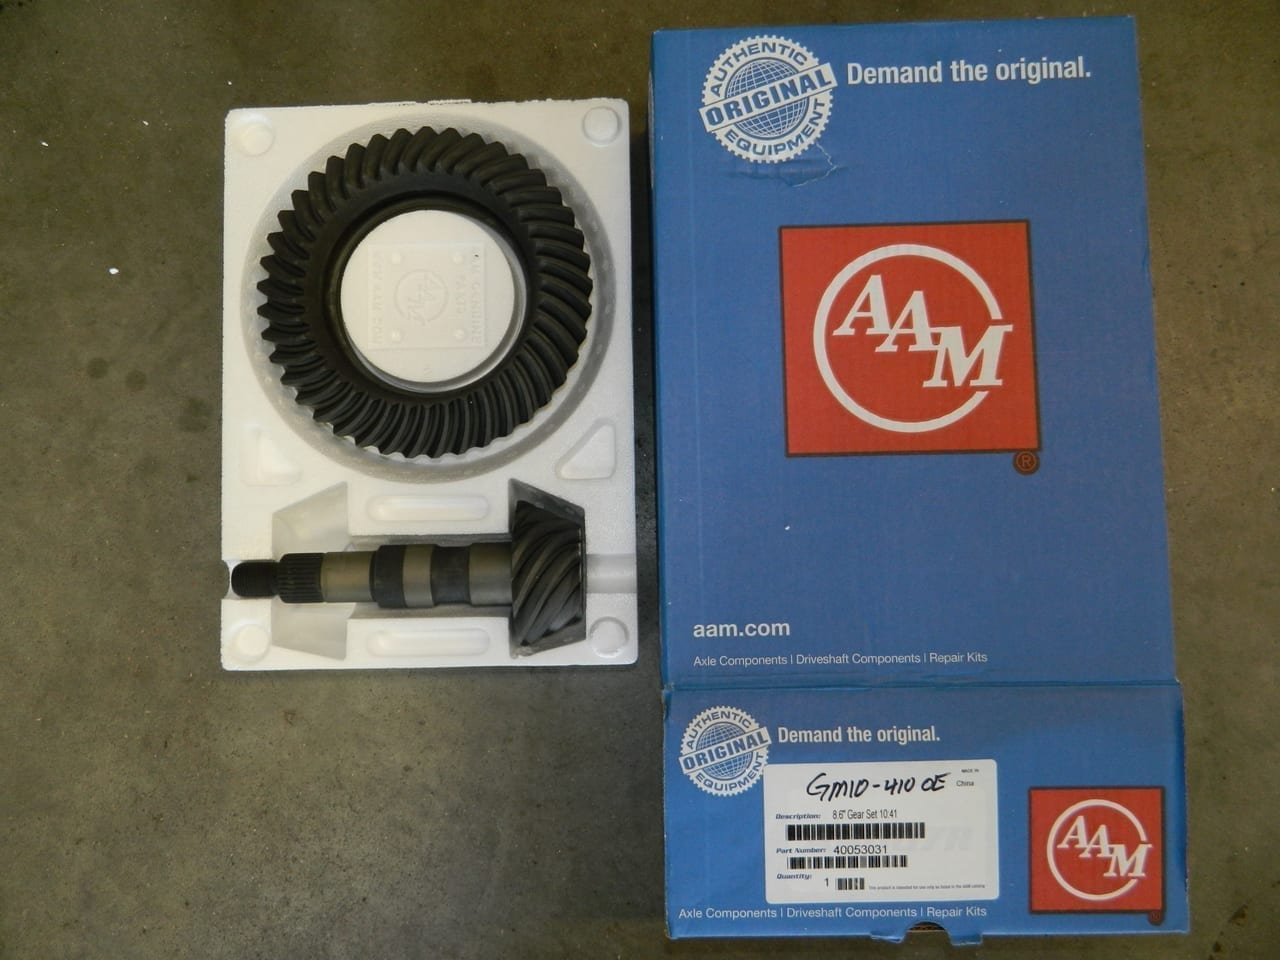 GM10-410 OEM AAM Ring & Pinion 10 Bolt Gear Set 8.5/8.6 Chevy Car and Truck